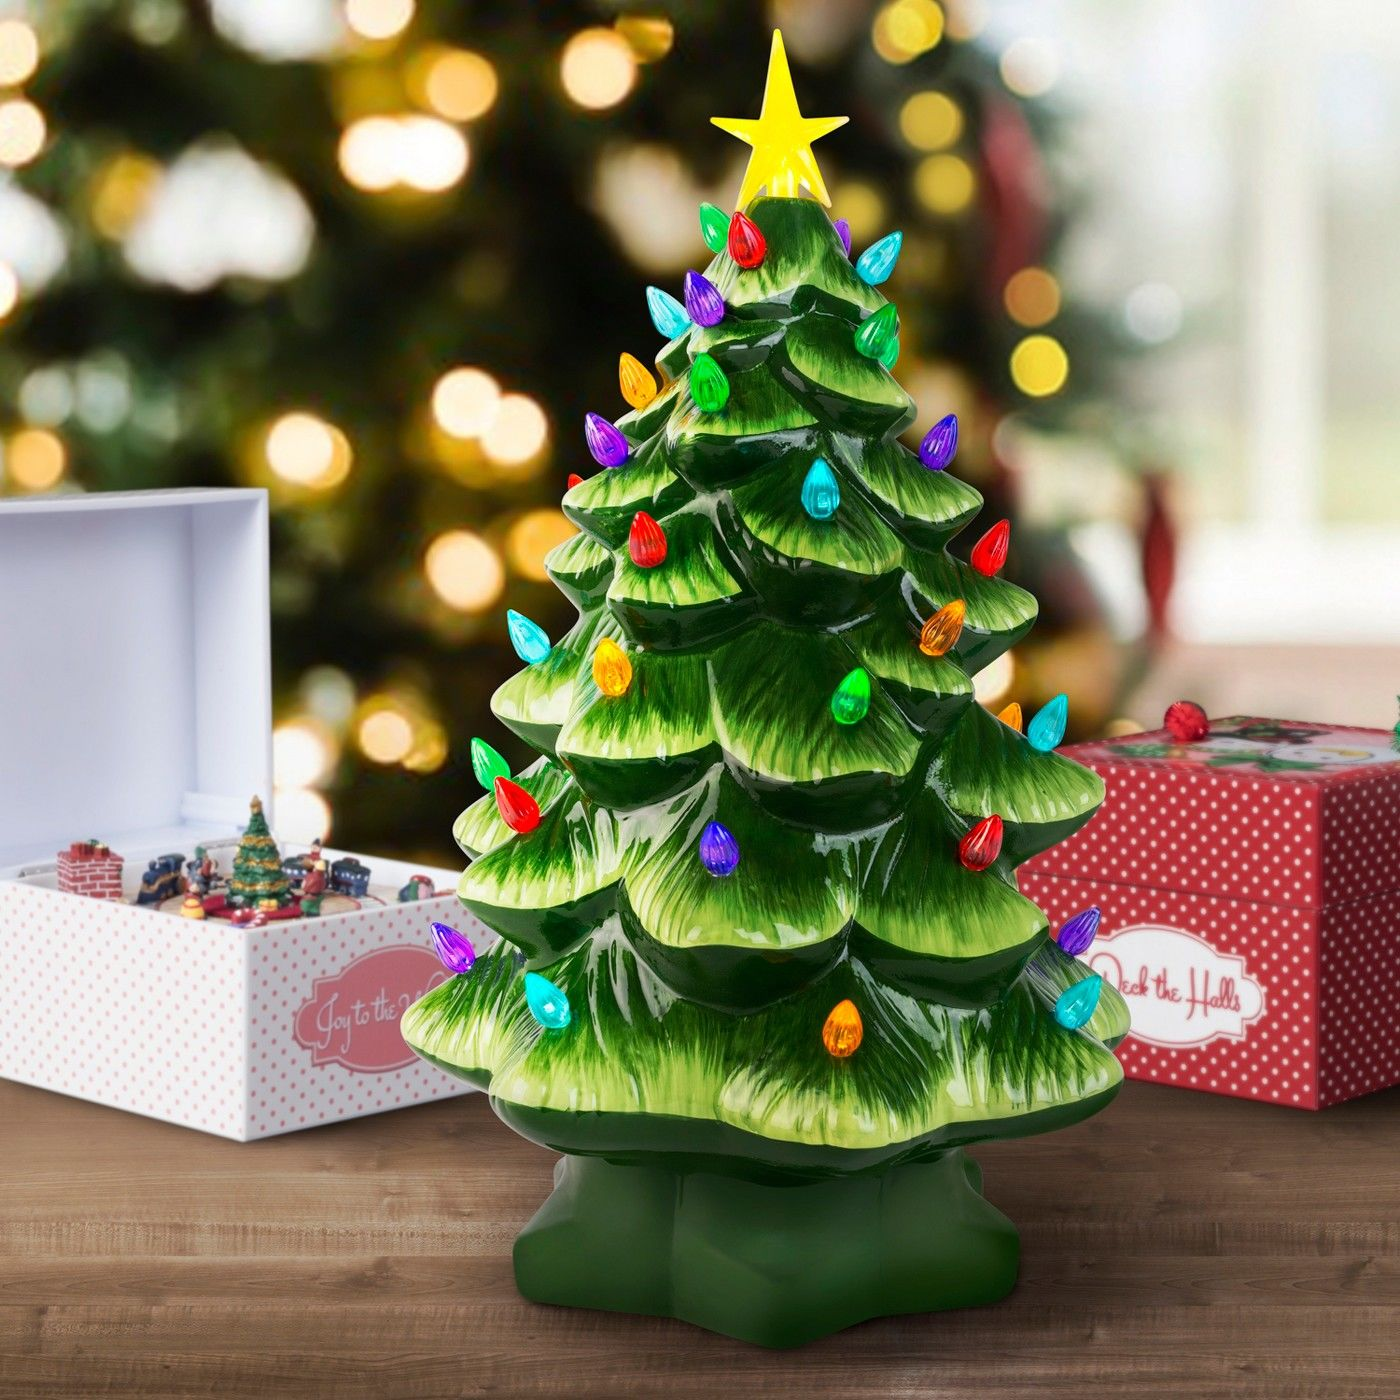 WATCH: These Nostalgic Christmas Trees Are Making a Comeback